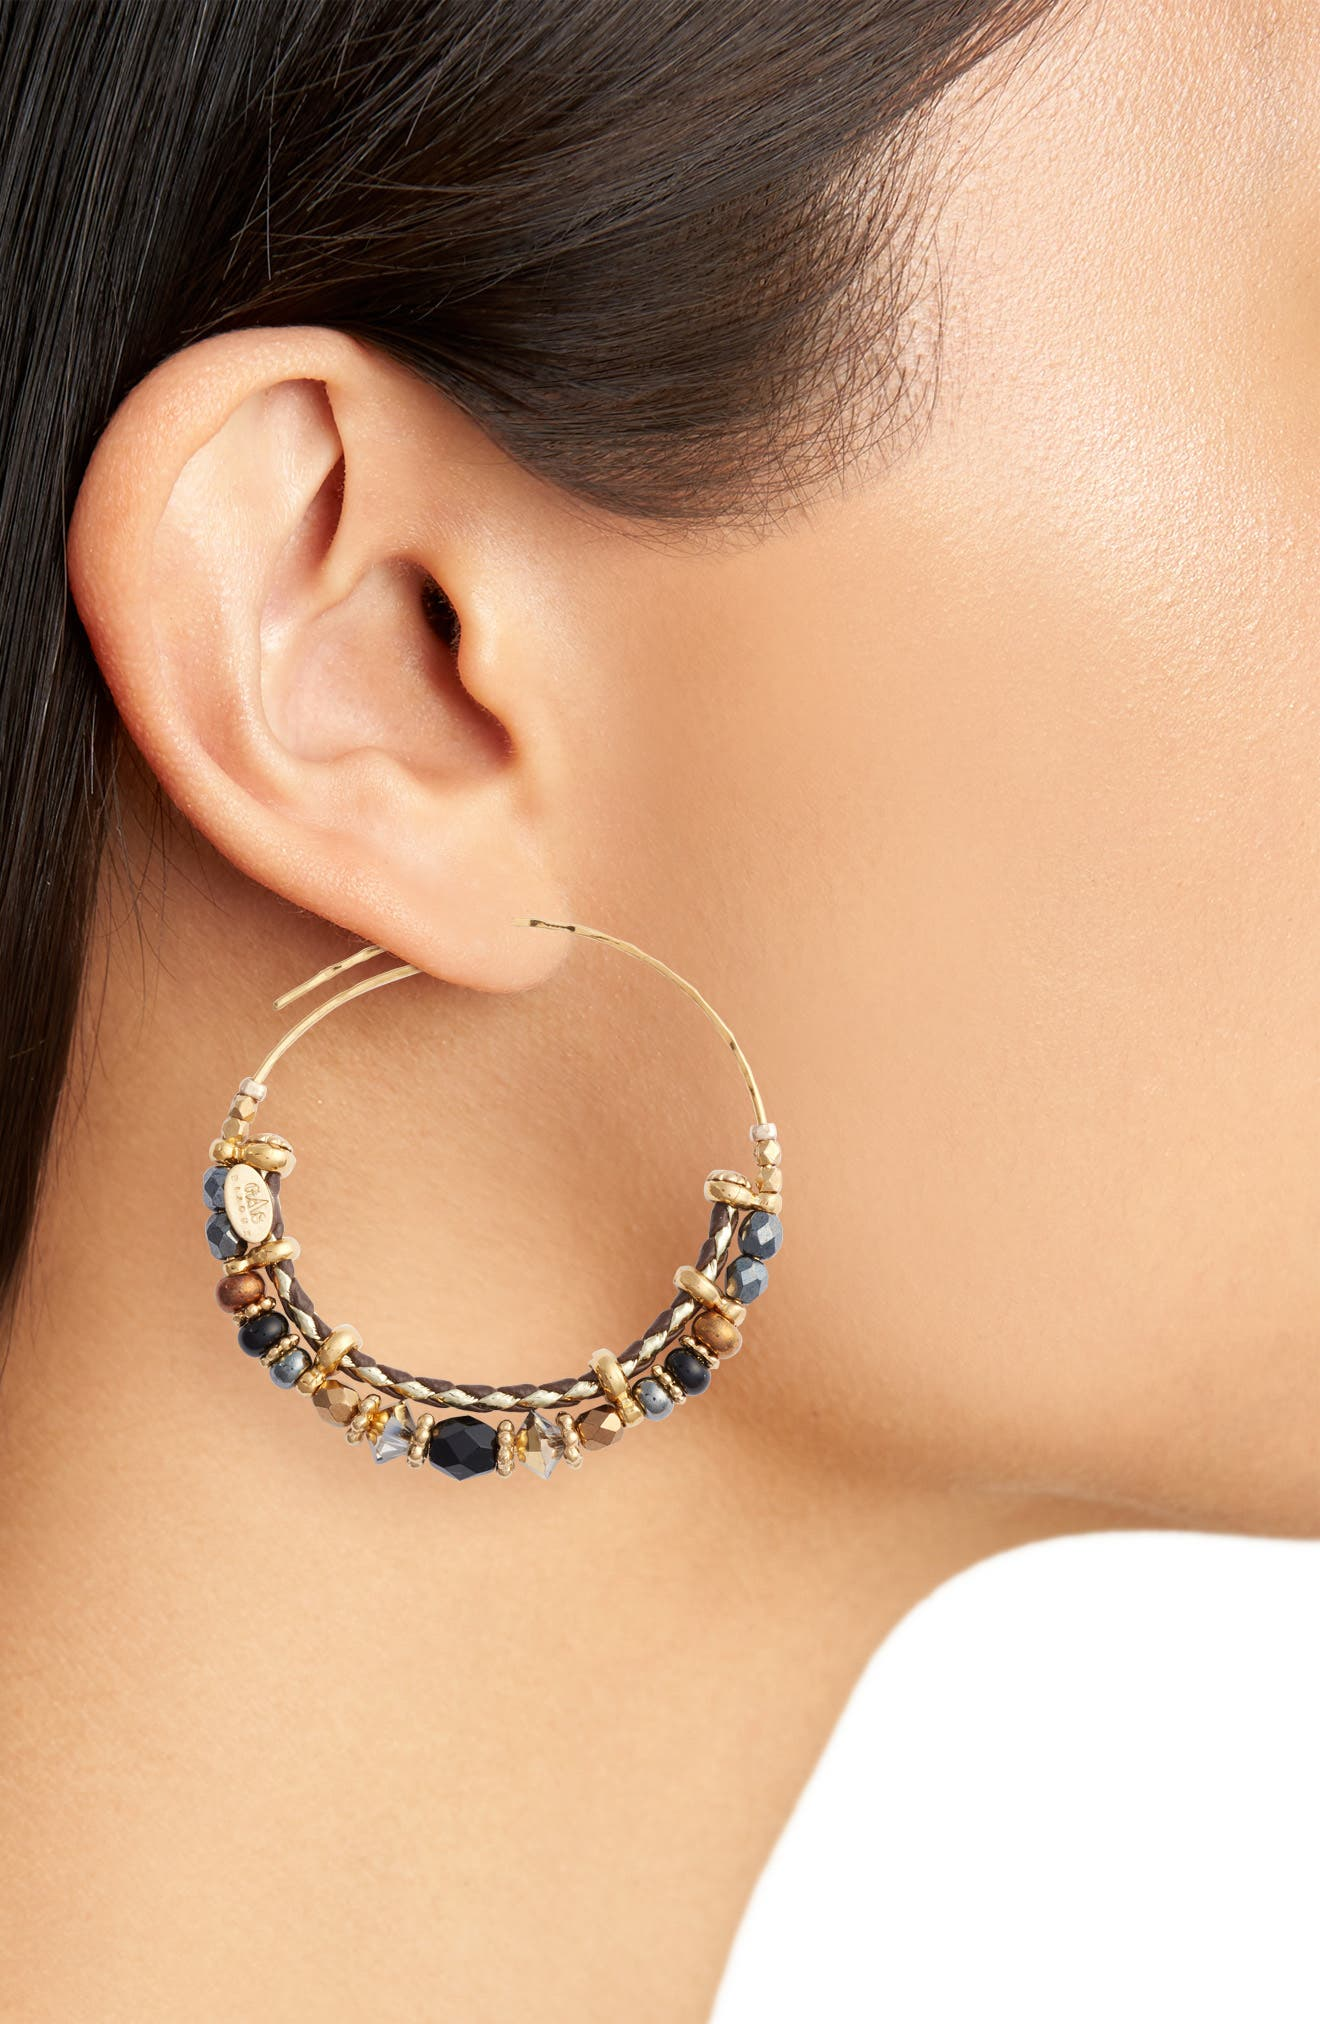 Comedia Small Hoop Earrings,                             Alternate thumbnail 2, color,                             Black/ Gold